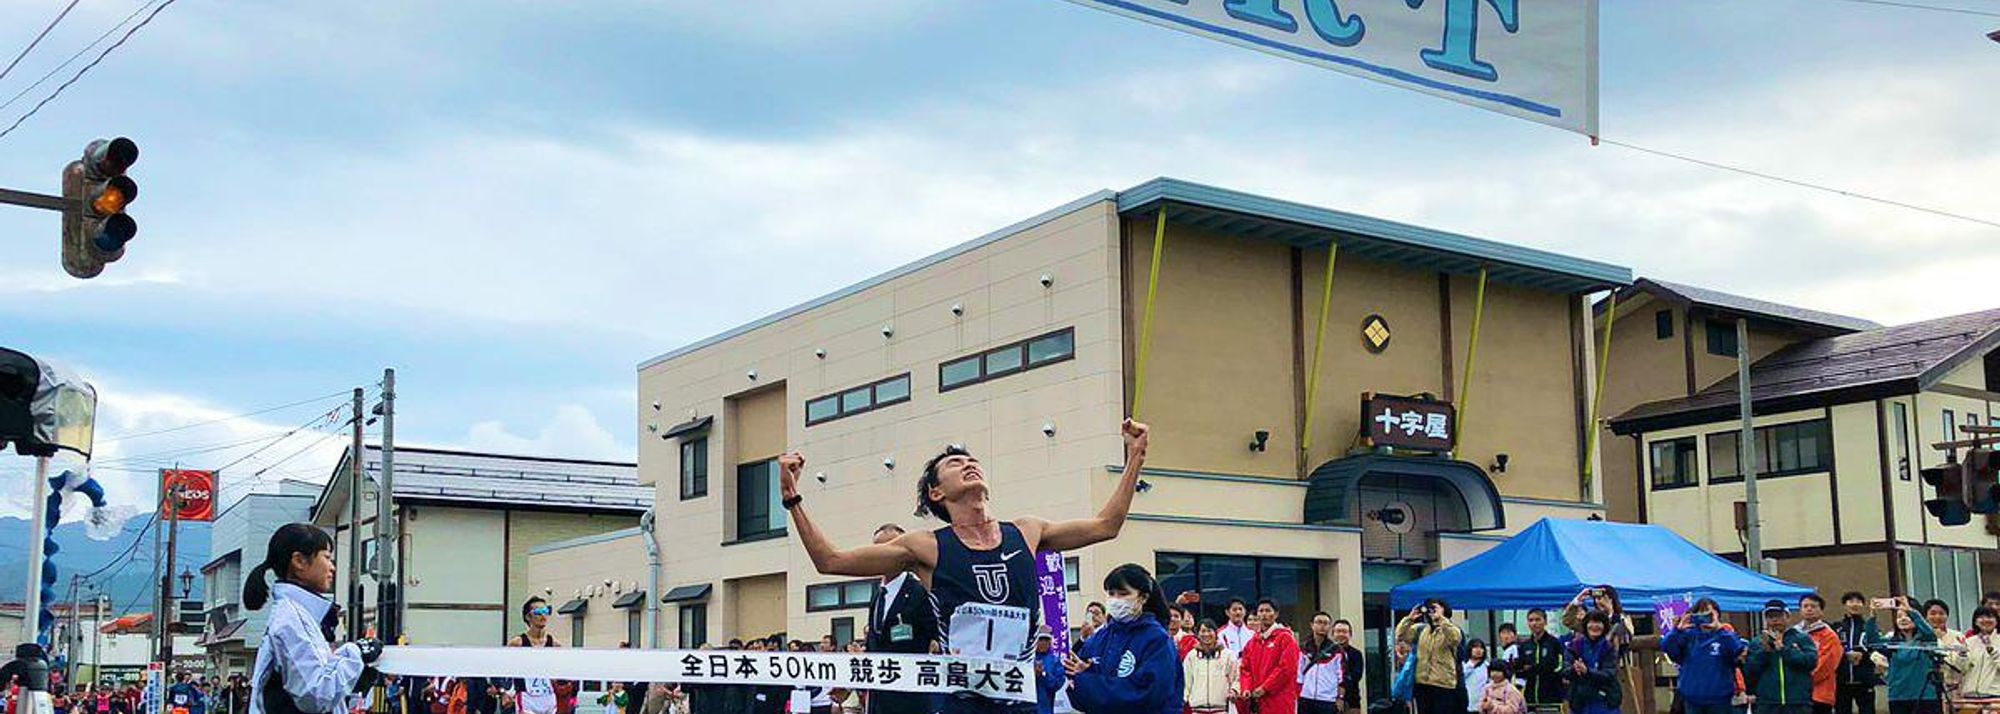 Masatora Kawano booked his place on Japan's 2020 Olympic team by winning the 50km race walk in Takahata in a national record of 3:36:45 on Sunday (27).